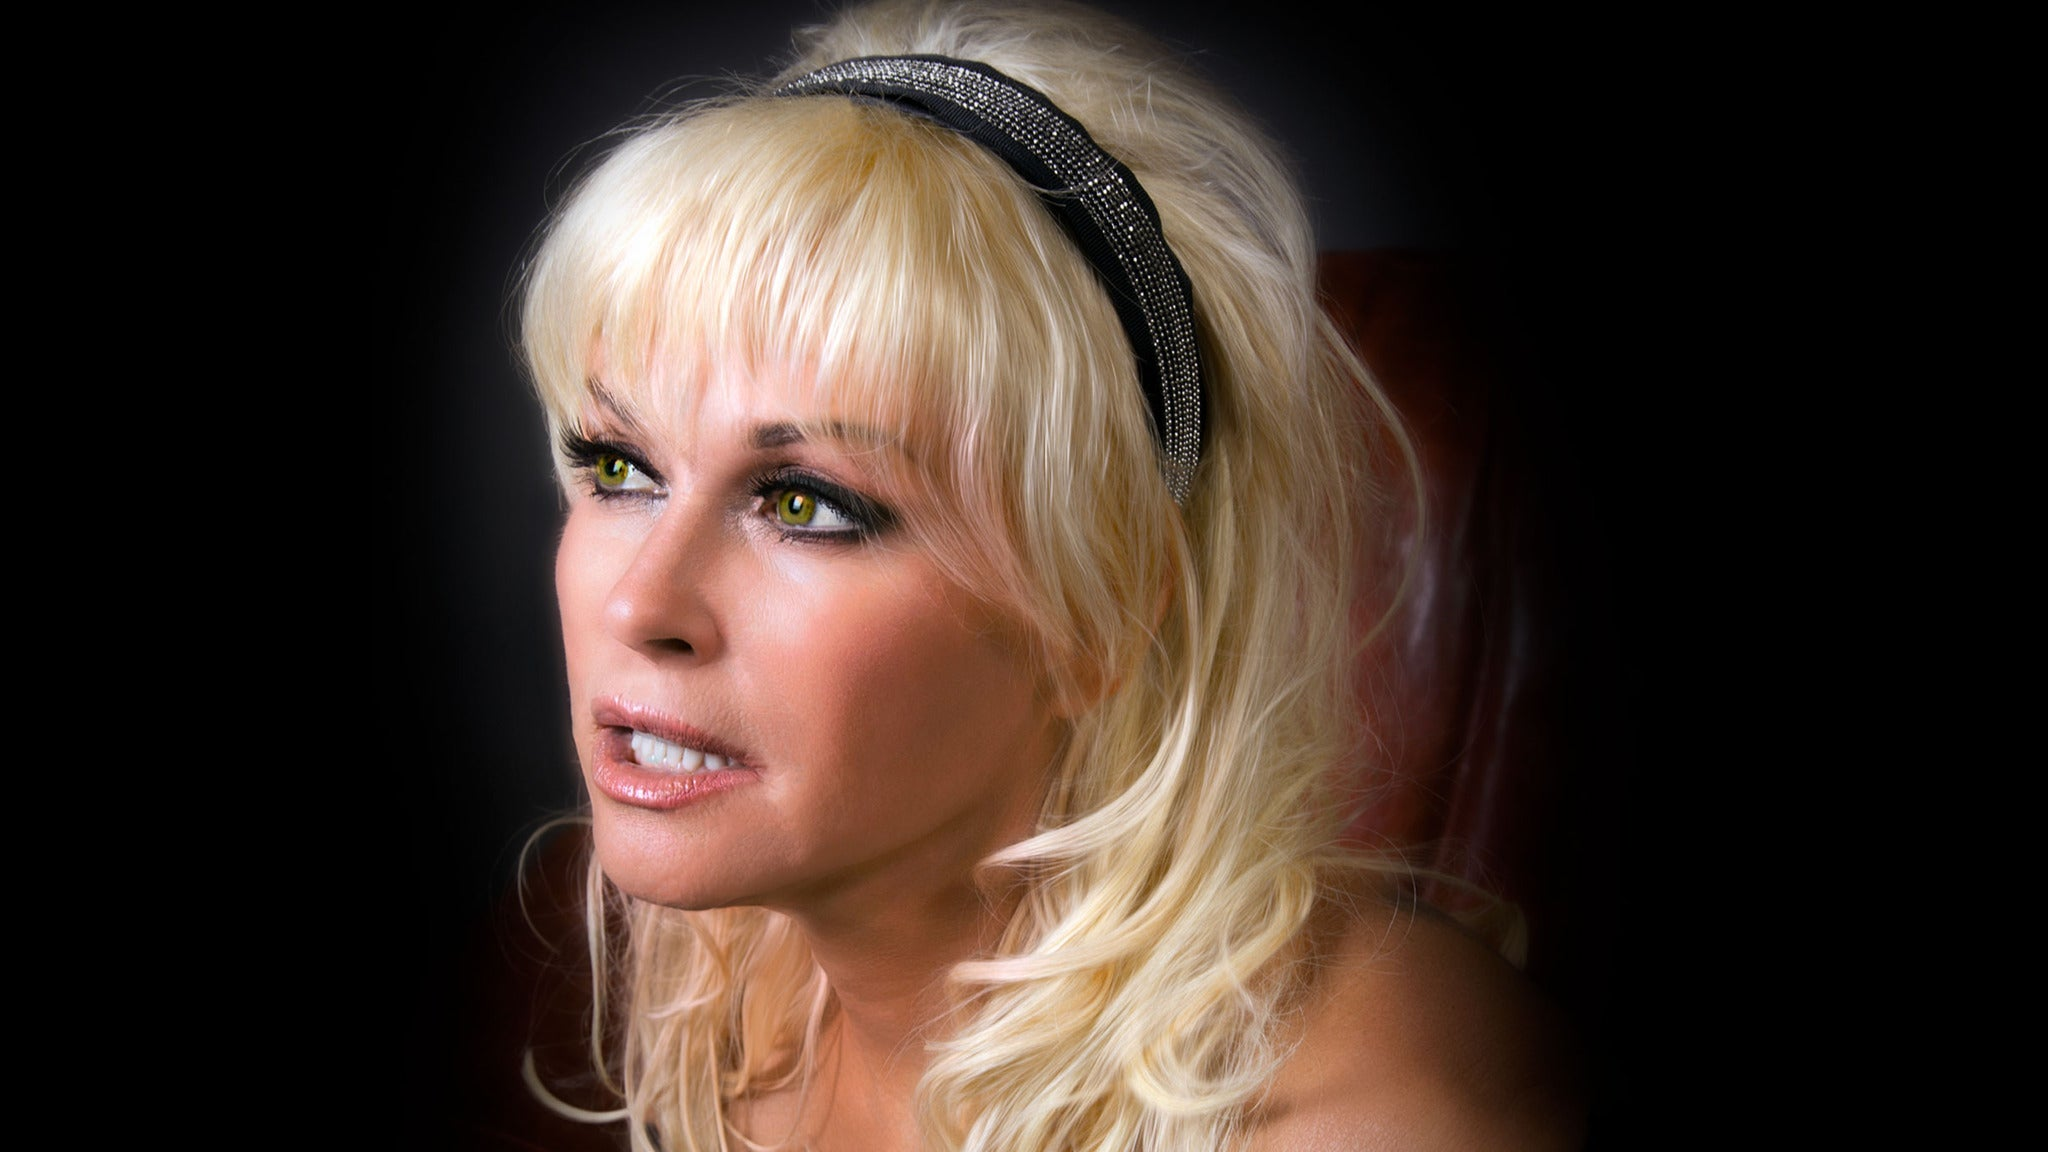 SORRY, THIS EVENT IS NO LONGER ACTIVE<br>Lorrie Morgan at Ridgefield Playhouse - Ridgefield, CT 06877